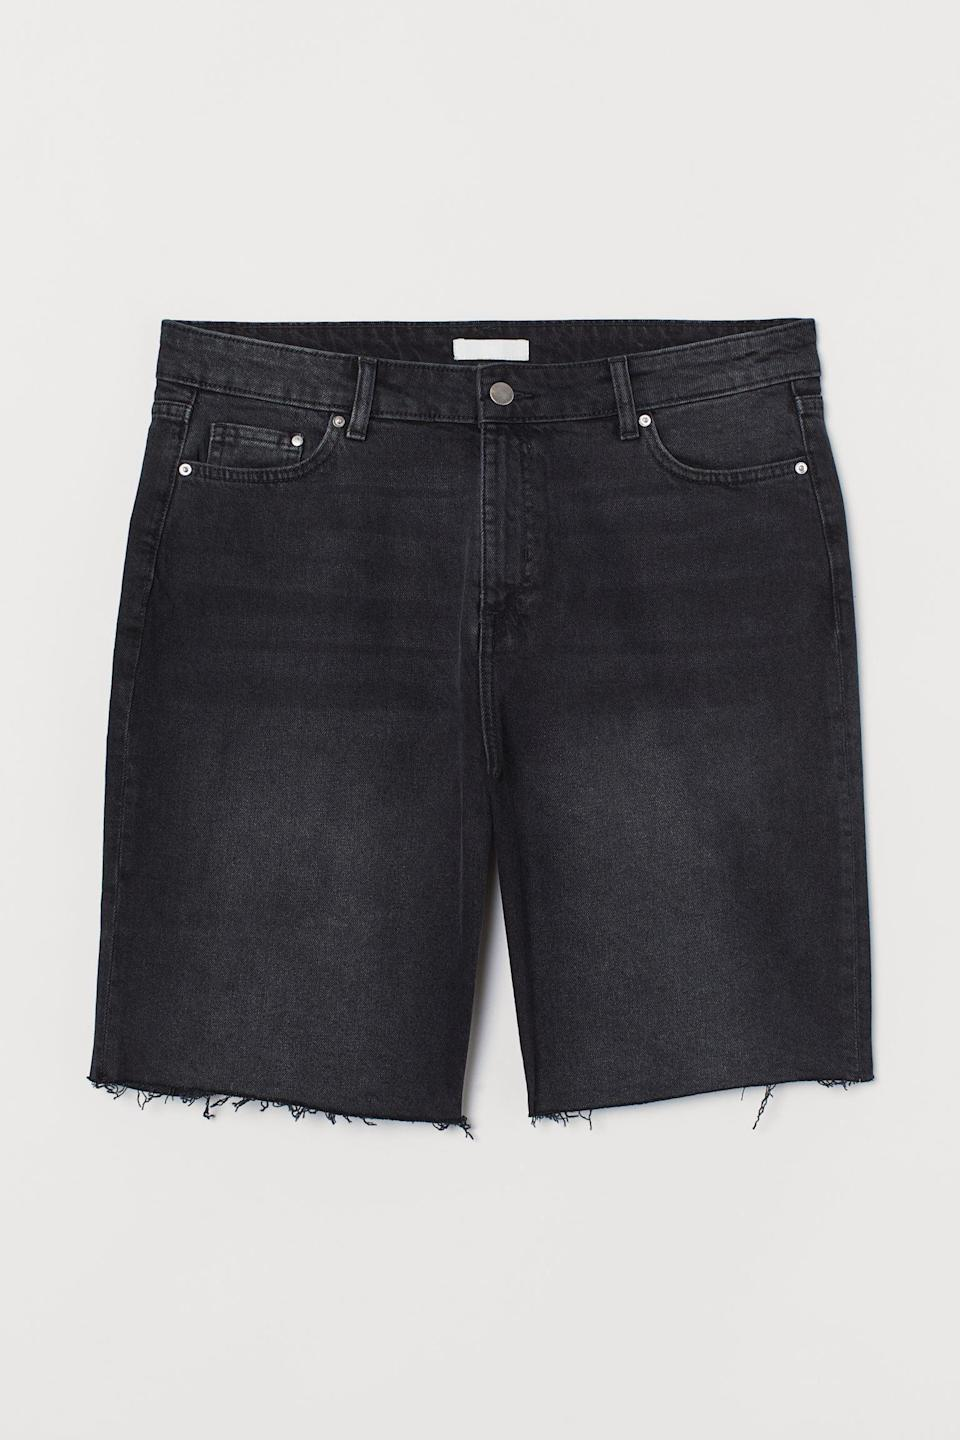 <p>These <span>H&amp;M+ Denim Shorts High Waist</span> ($25) are both comfy and flattering.</p>